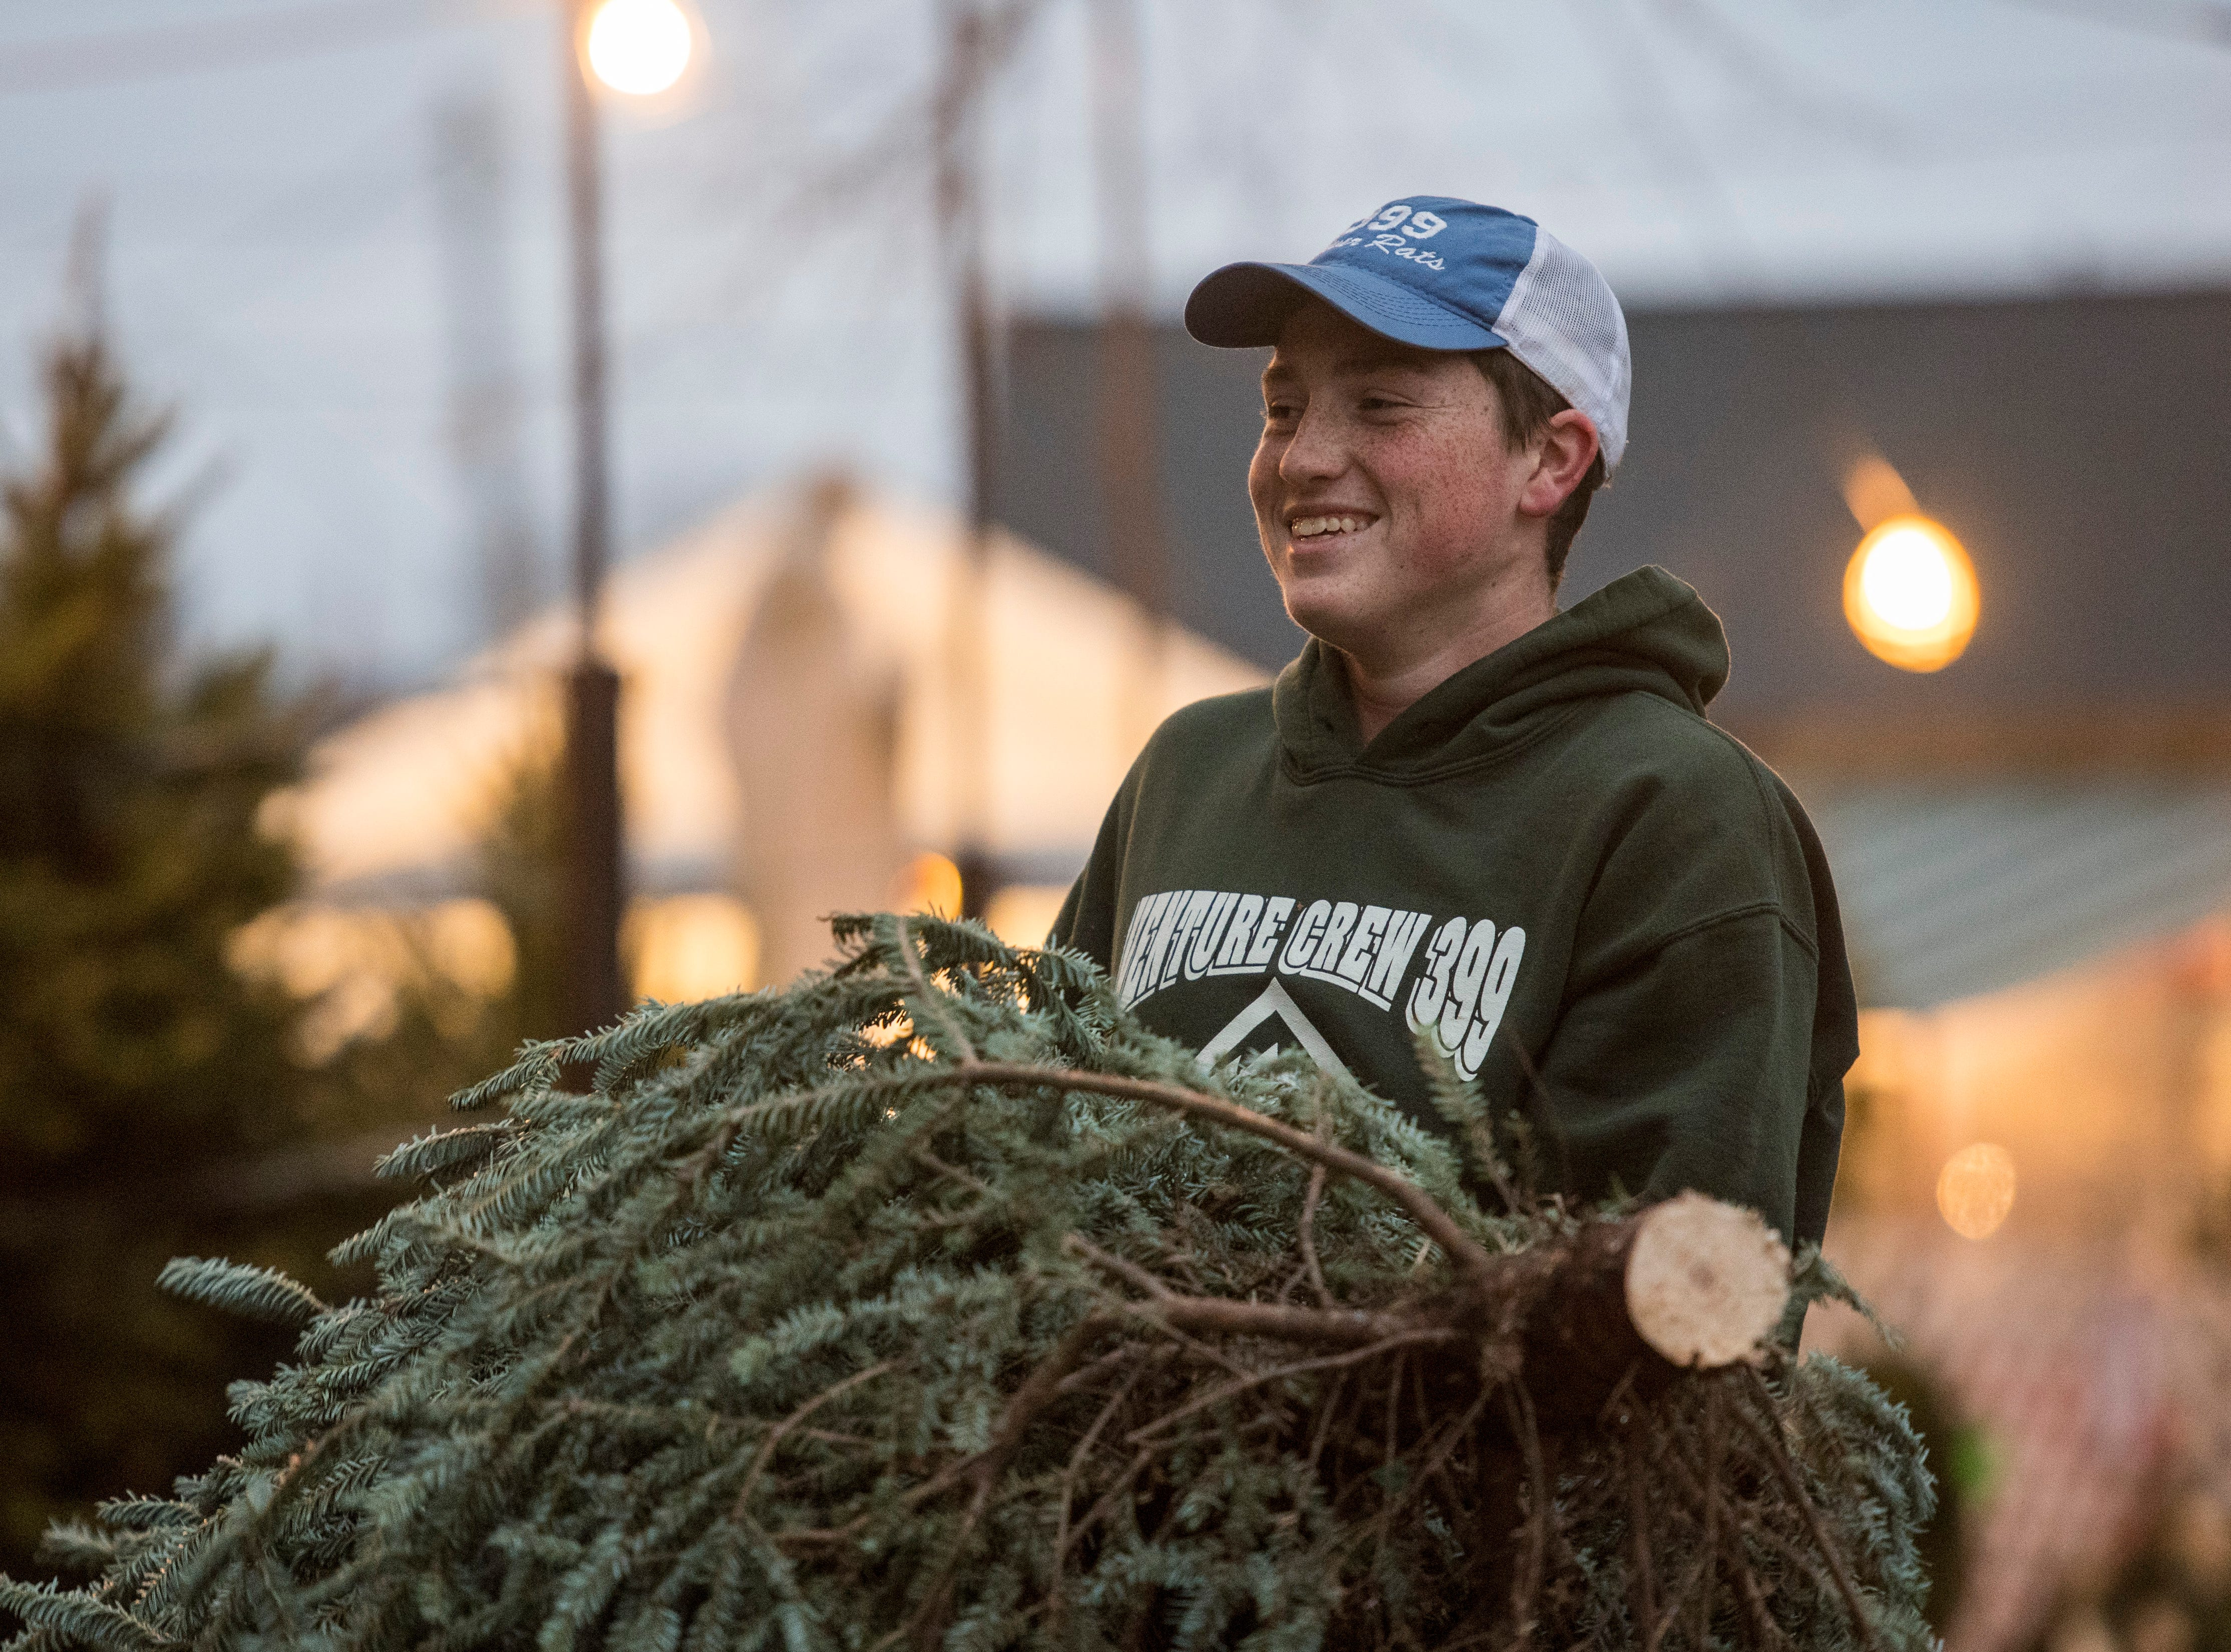 Larry Haller, 17, helps carry a Christmas tree for a customers while working at the Boy Scouts Troop 399 tree lot in front of Sacred Heart Catholic Church of the West Side, Thursday, Nov. 29, 2018.